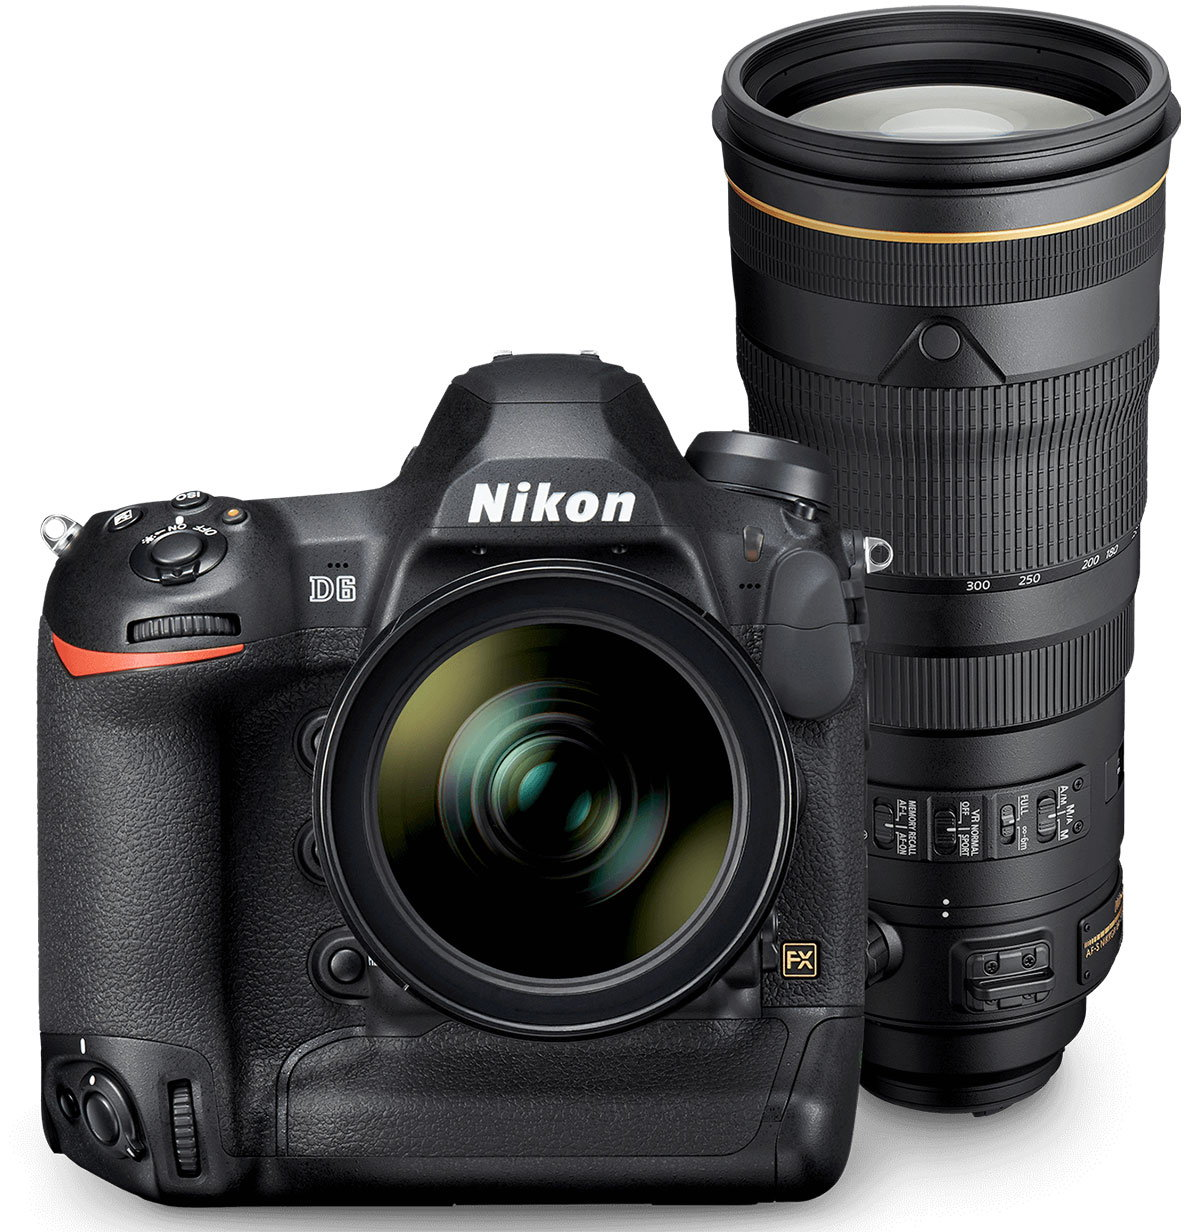 Nikon: News, Rumors And Discussion Thread